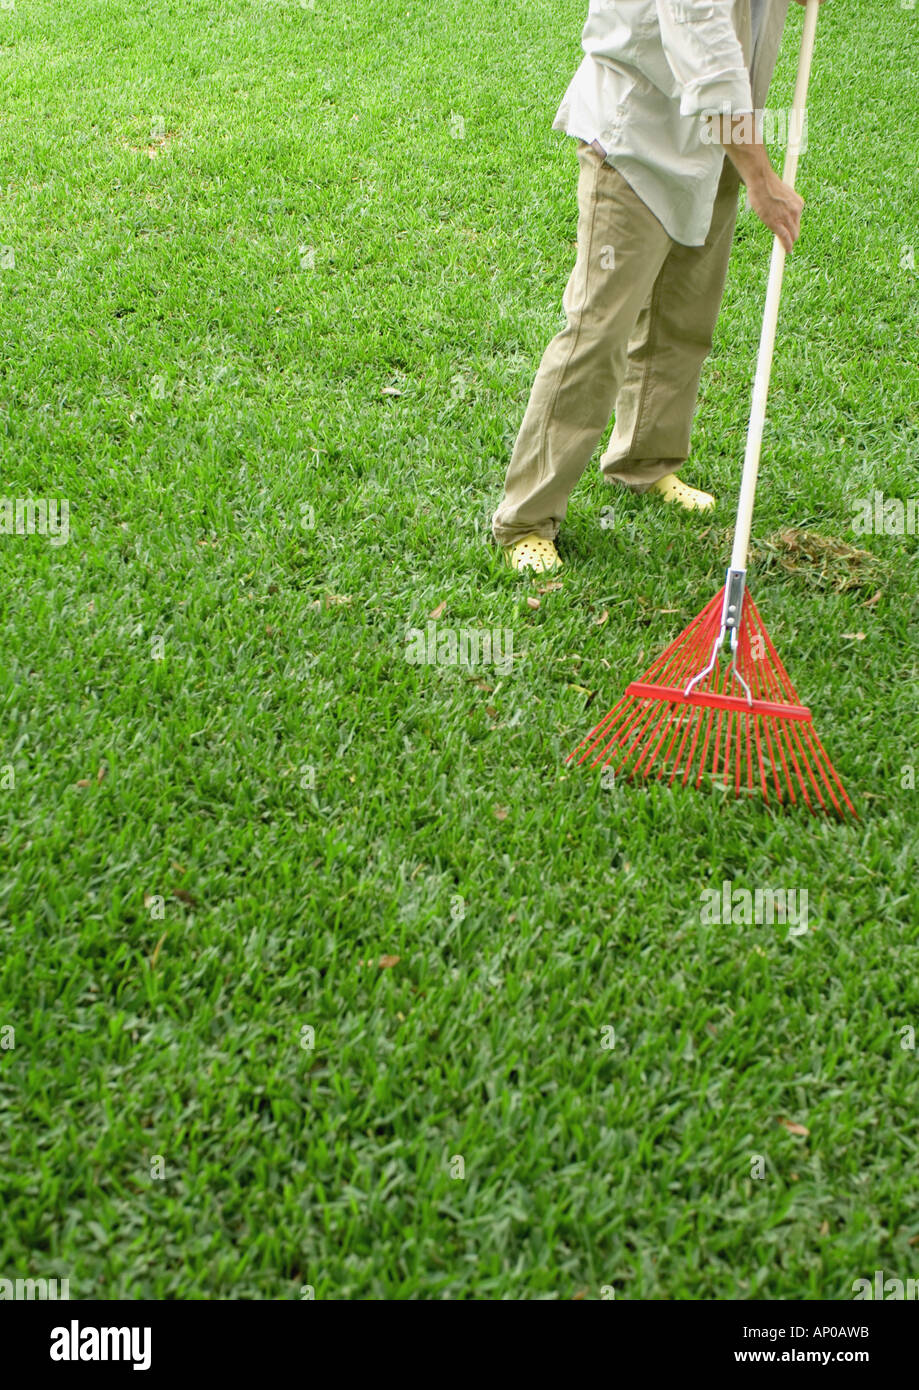 Man raking yard, low section - Stock Image